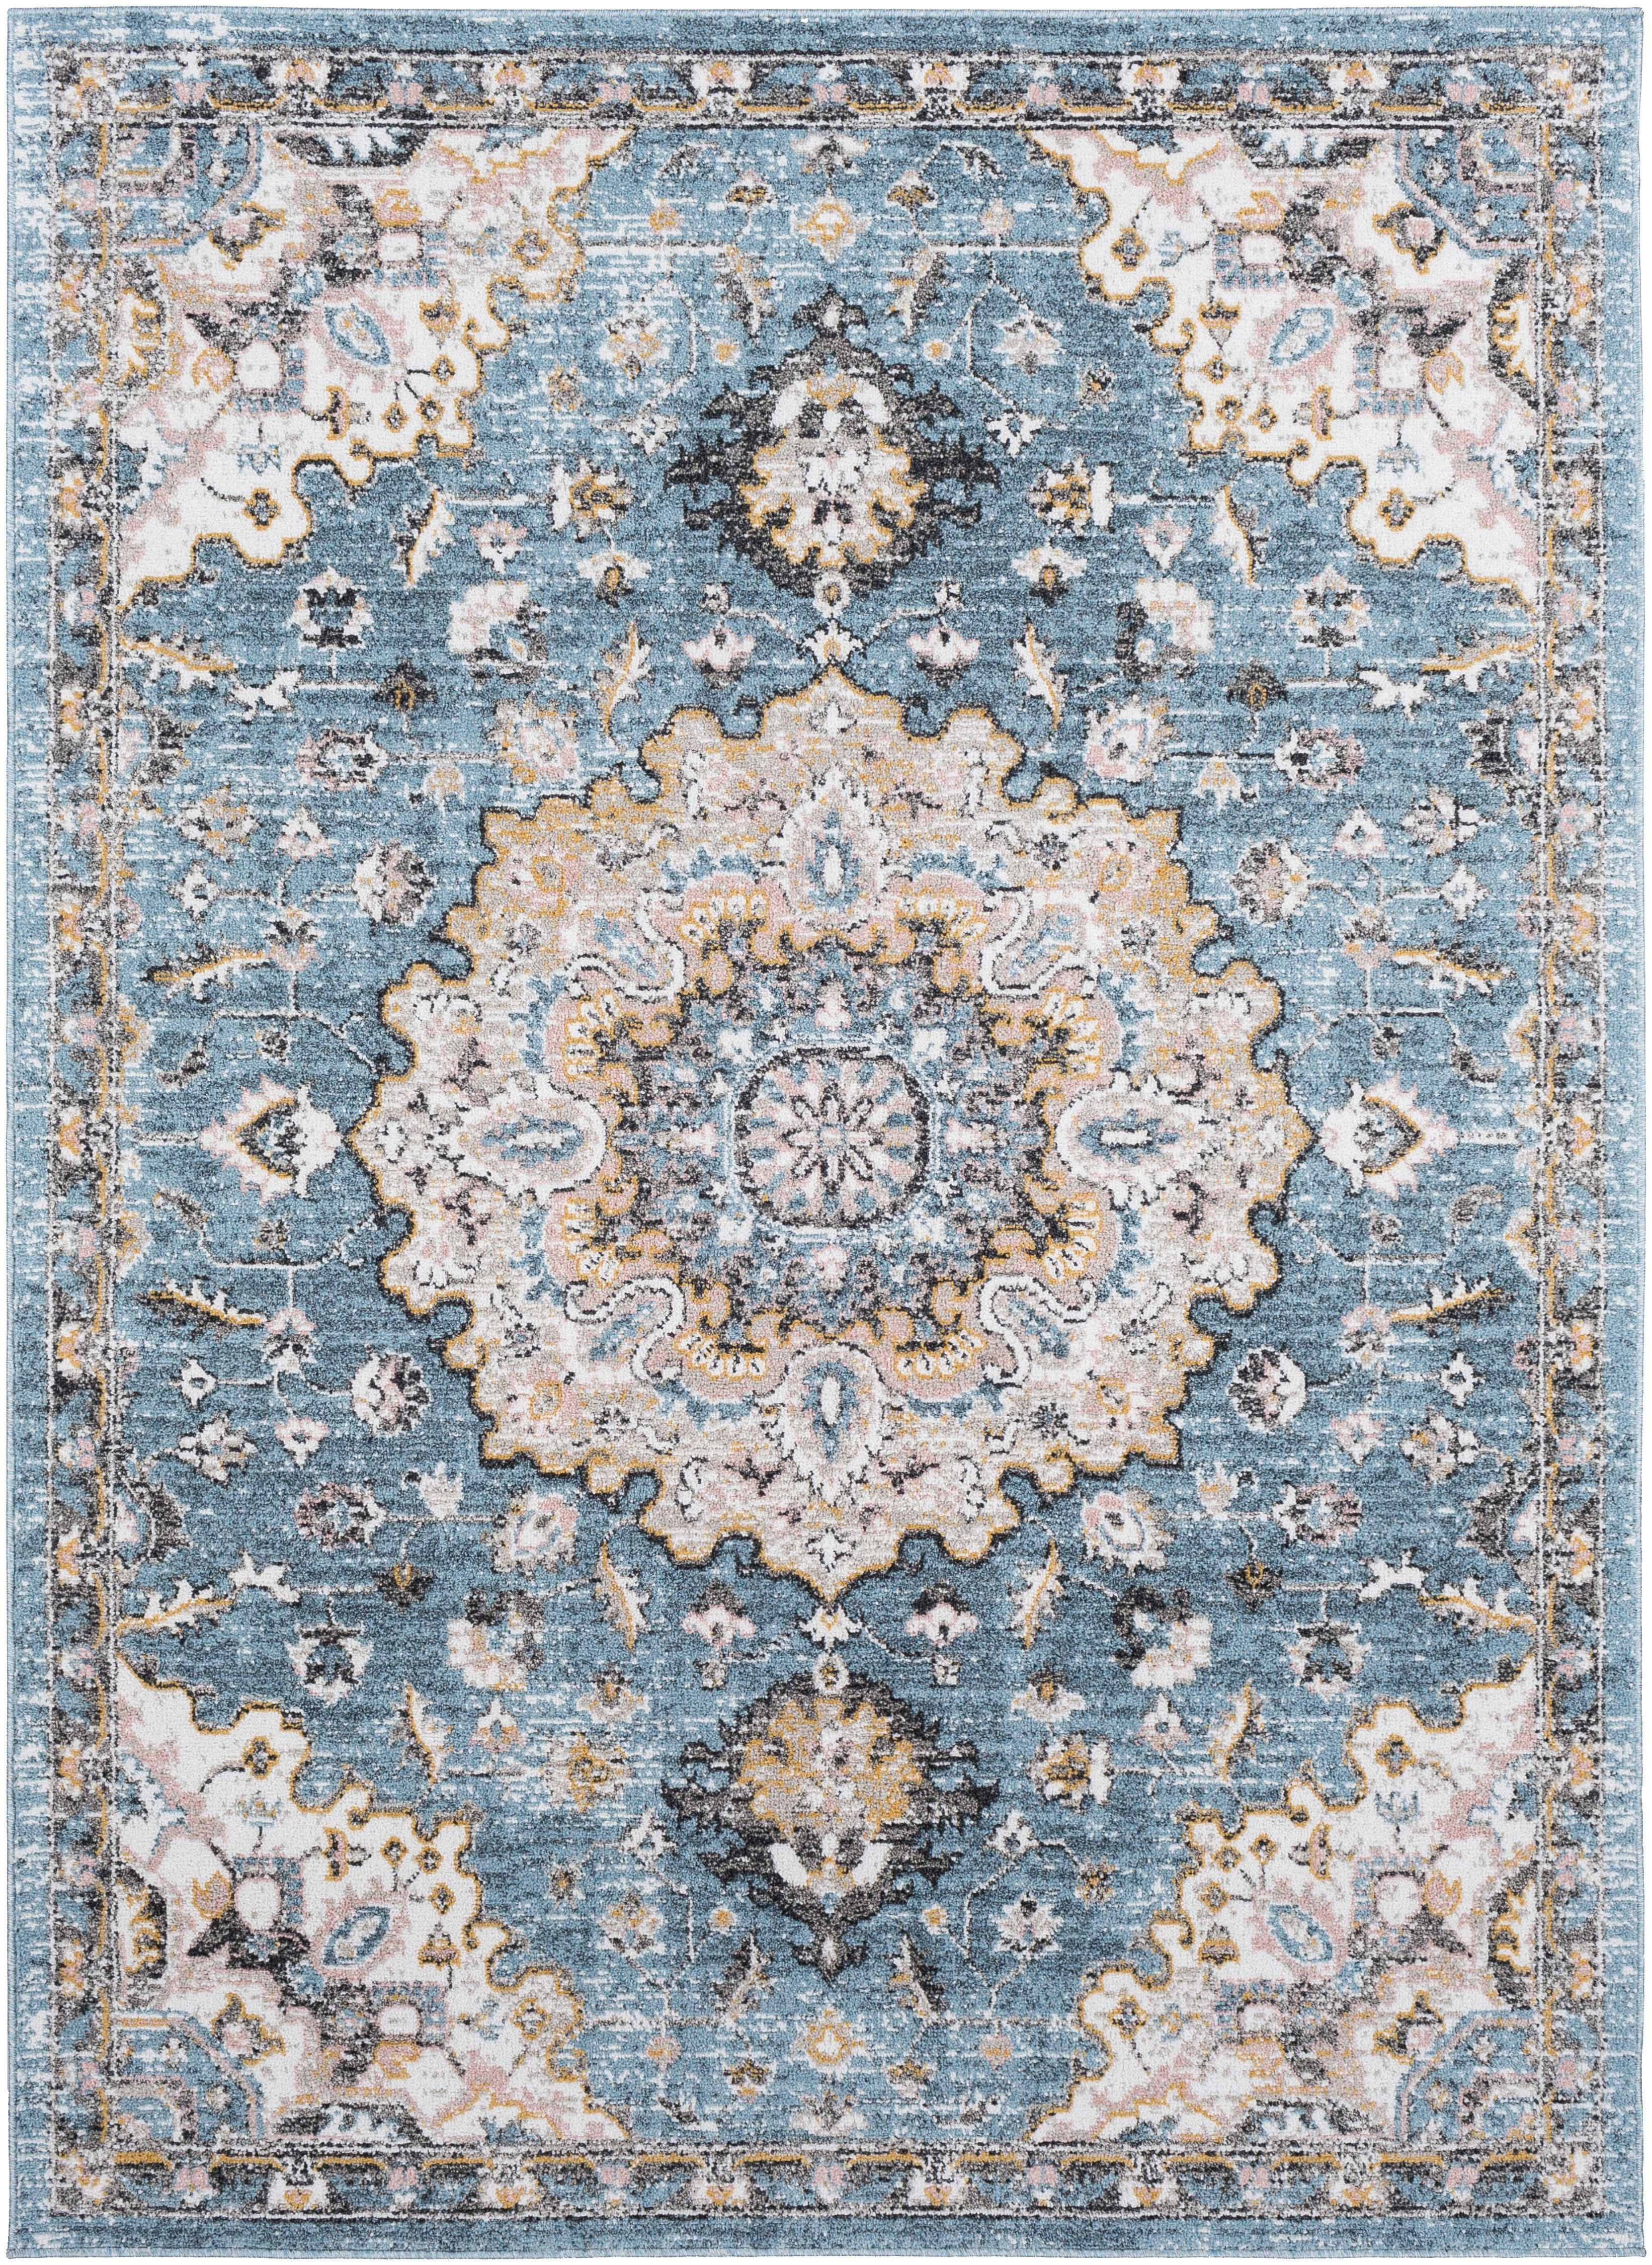 The Jemma Rug Features A Gorgeous Circular Center Display Adorned With Dainty Flourishes Flowers And Vines Contrasting Colors Make F Aqua Rug Rugs Area Rugs